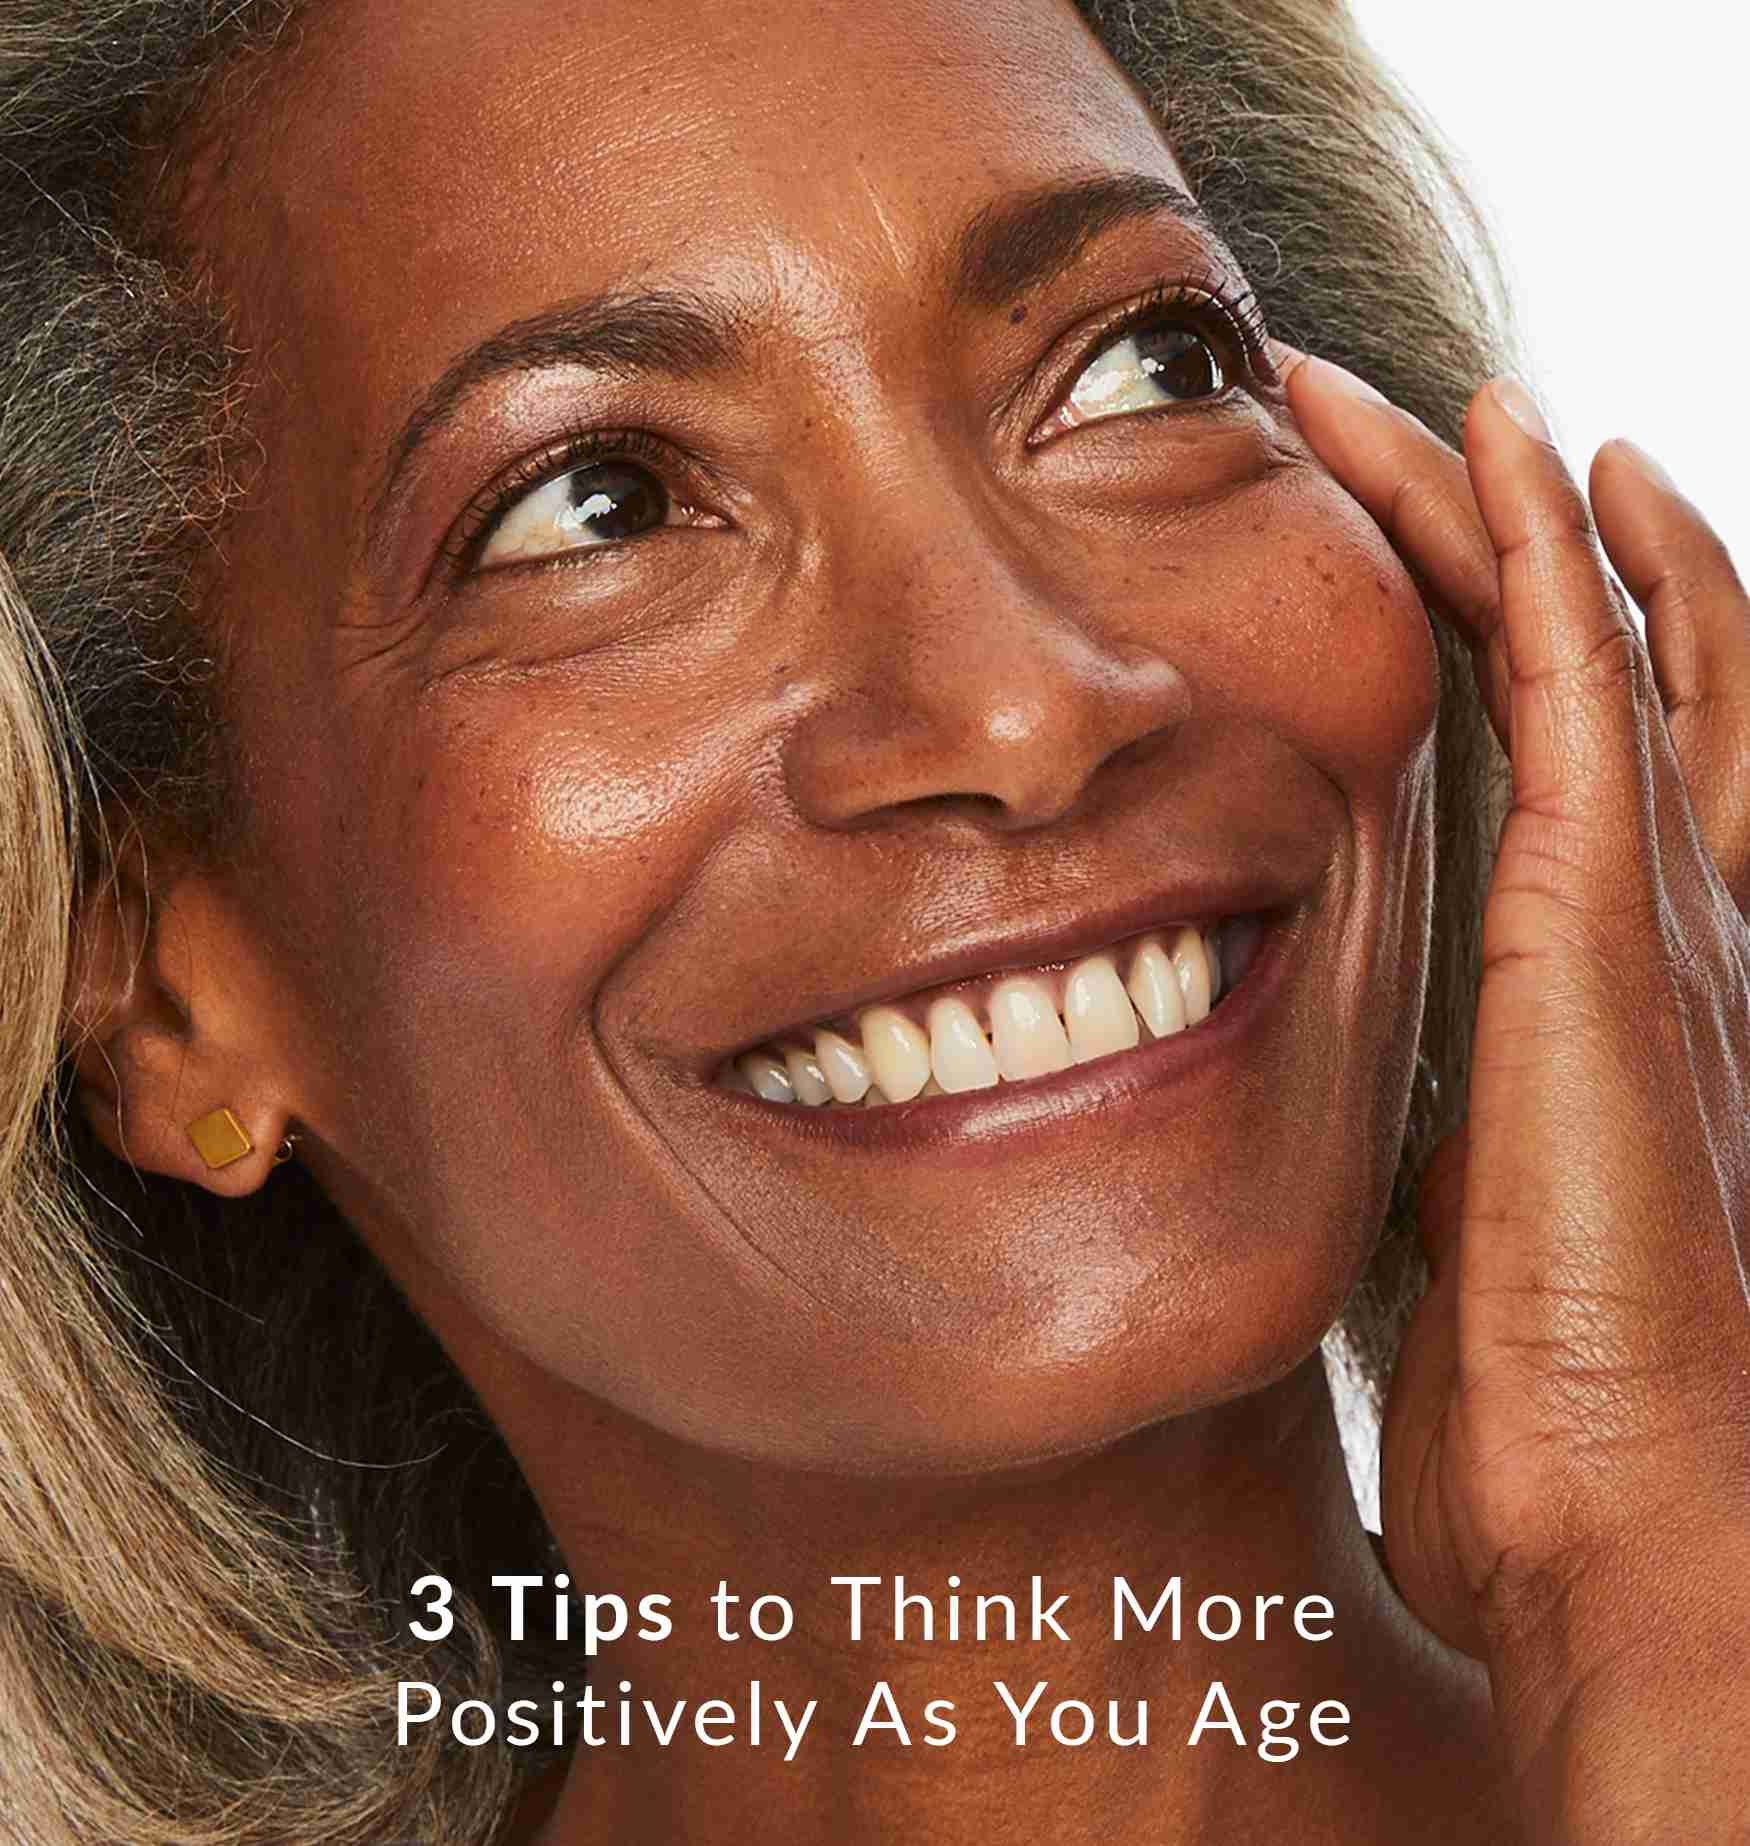 tips to think more positively as you age